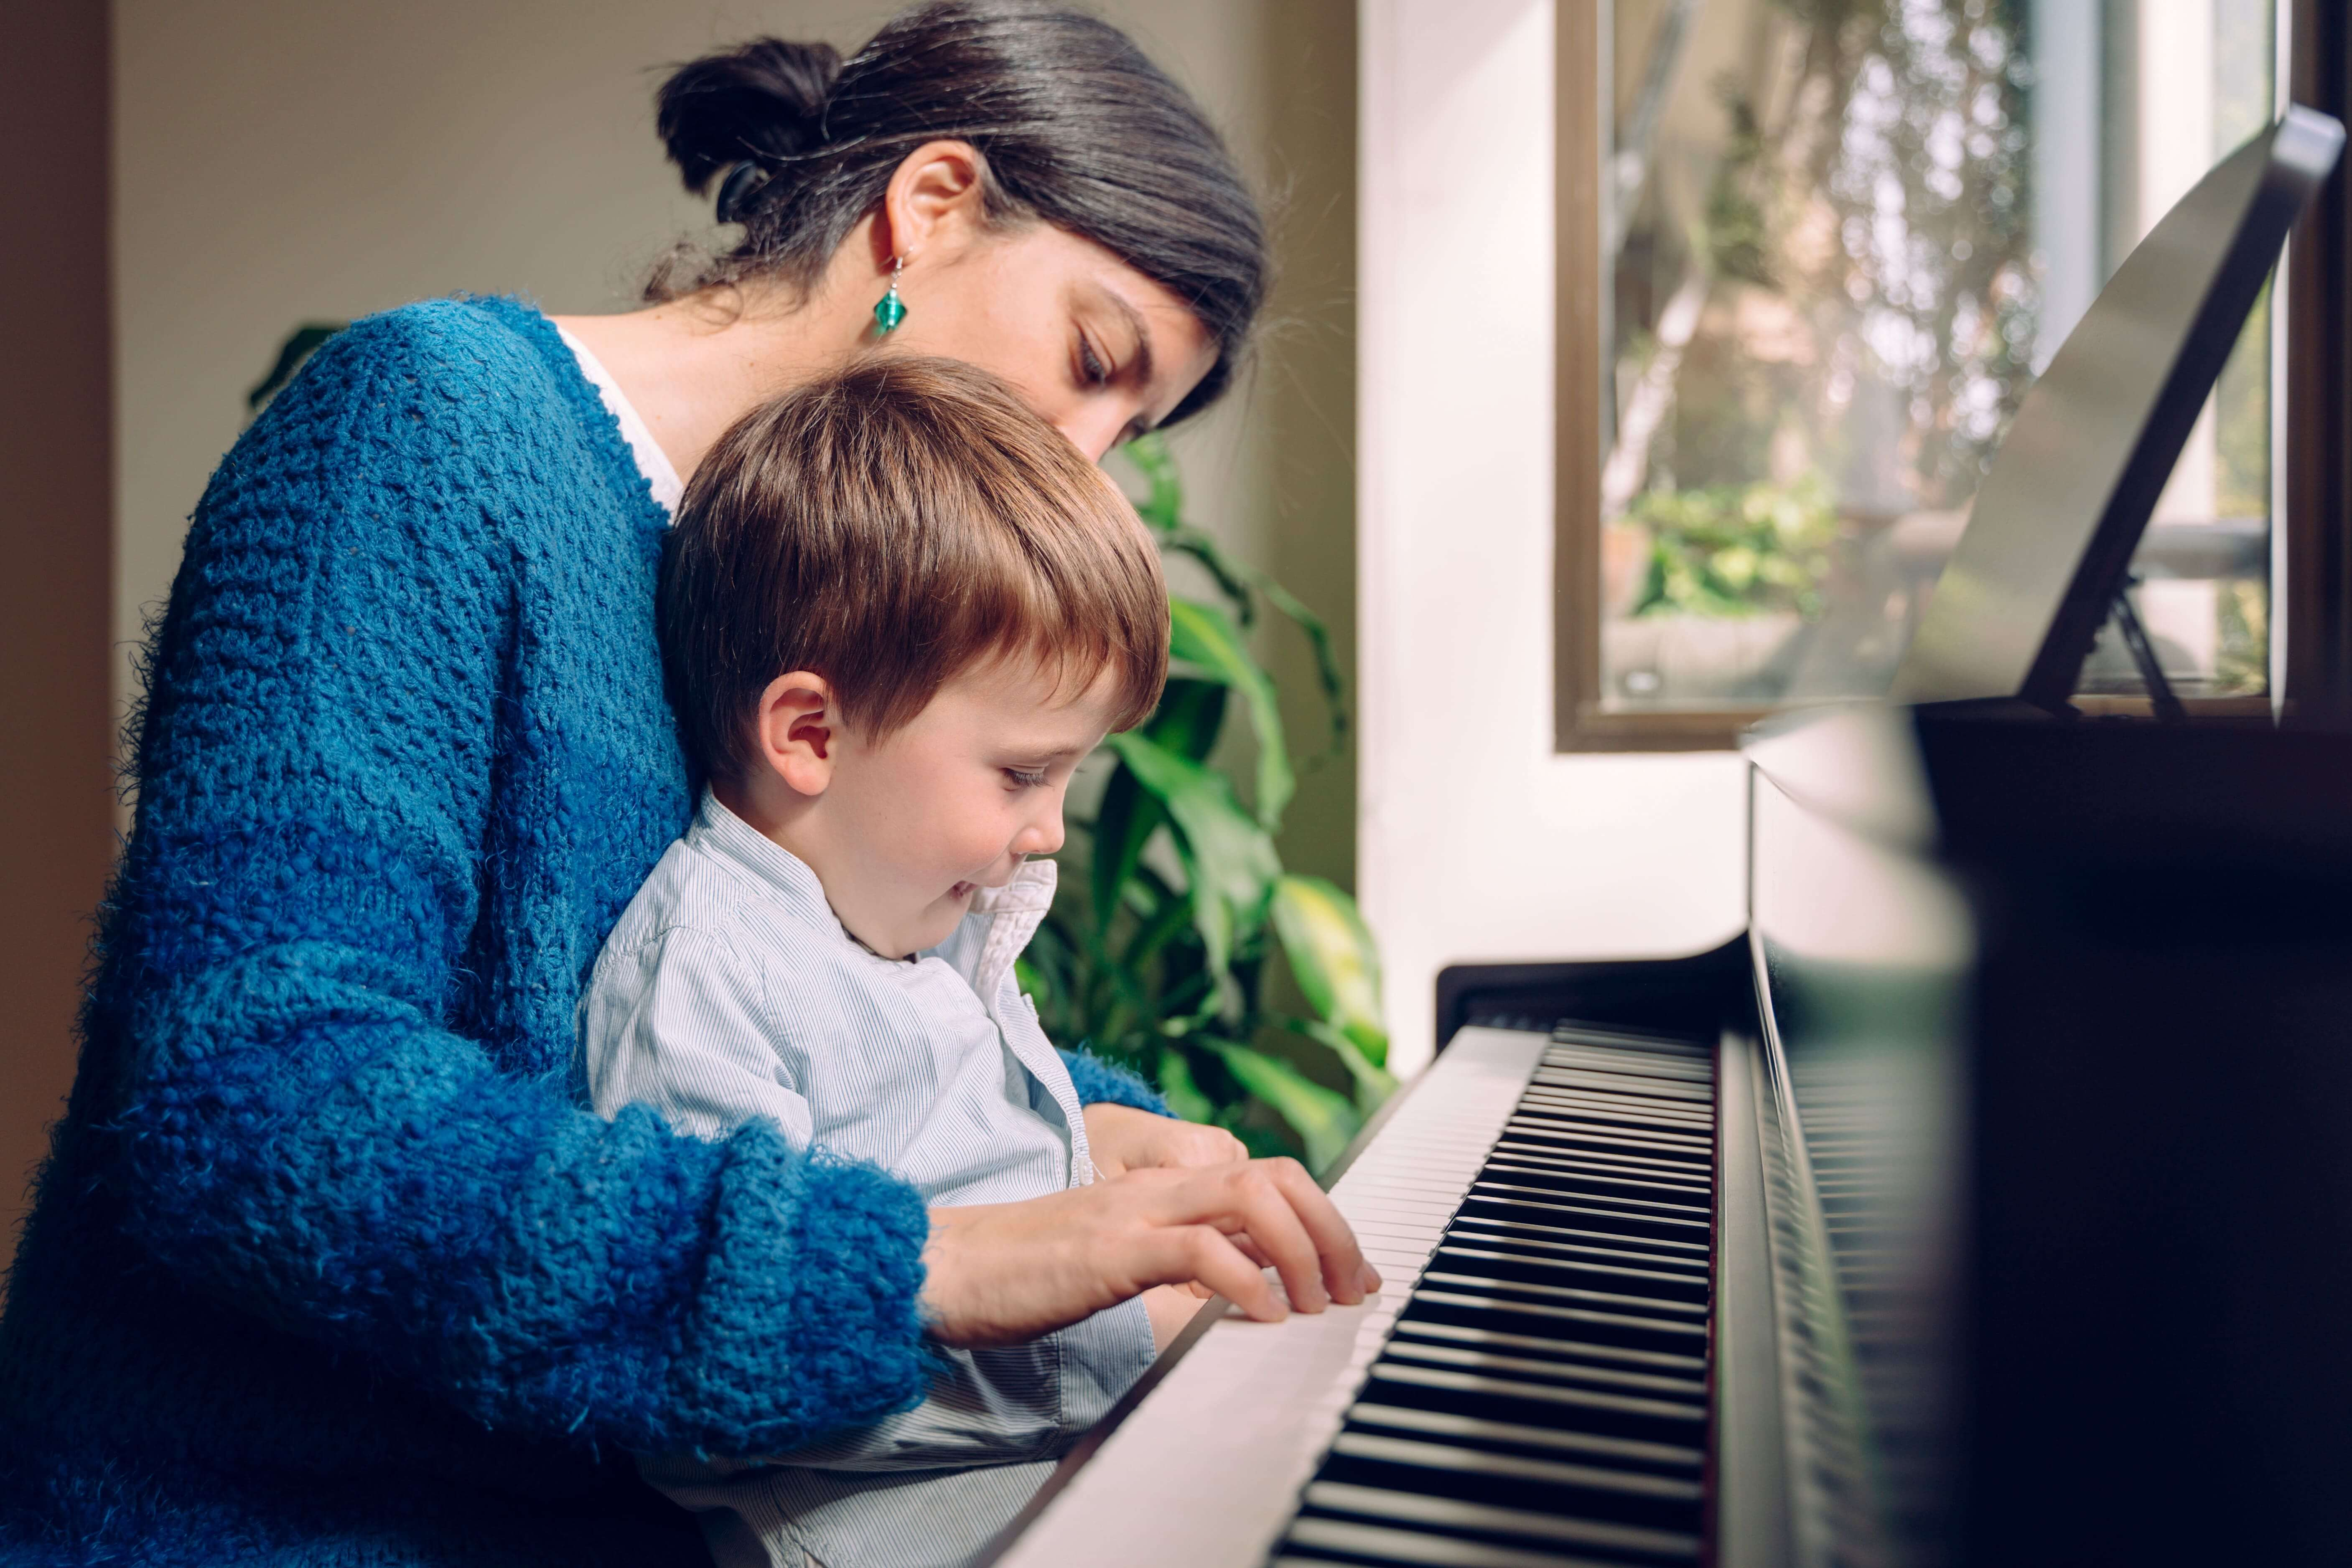 Instructor teaching her student on how to play Piano